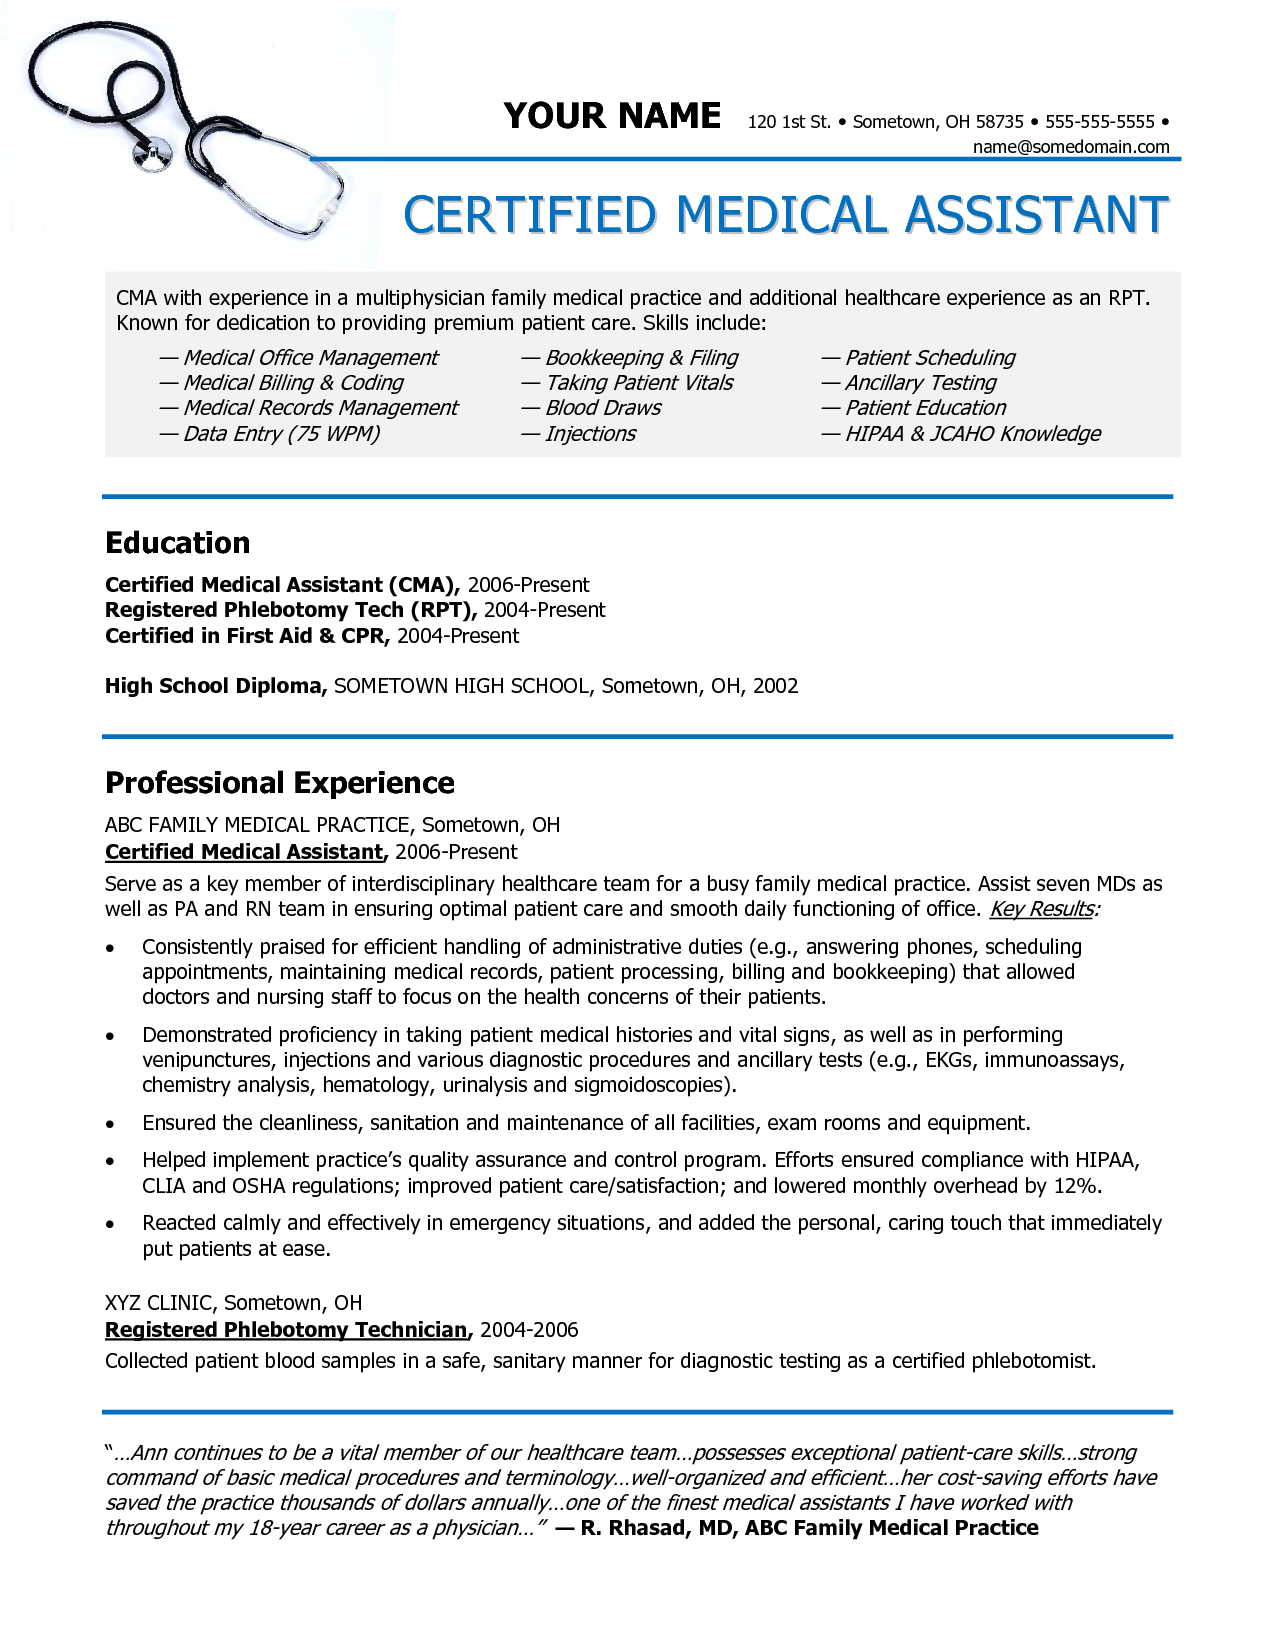 medical assistant resume samples medical assistant job description medical  assistant resume objective medical assistant resume template